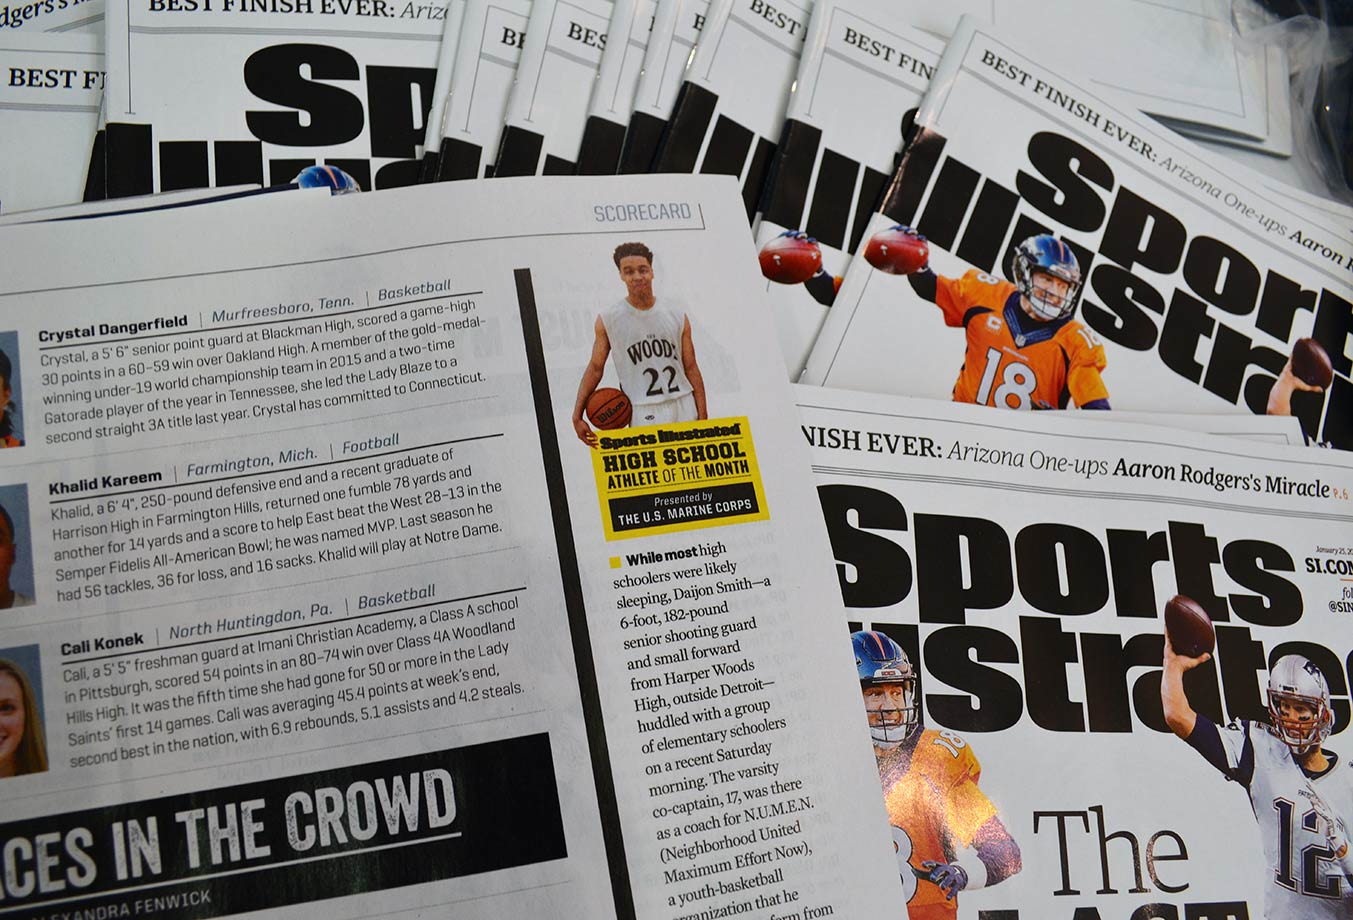 Daijon appeared in the Jan. 25 issue of Sports Illustrated.